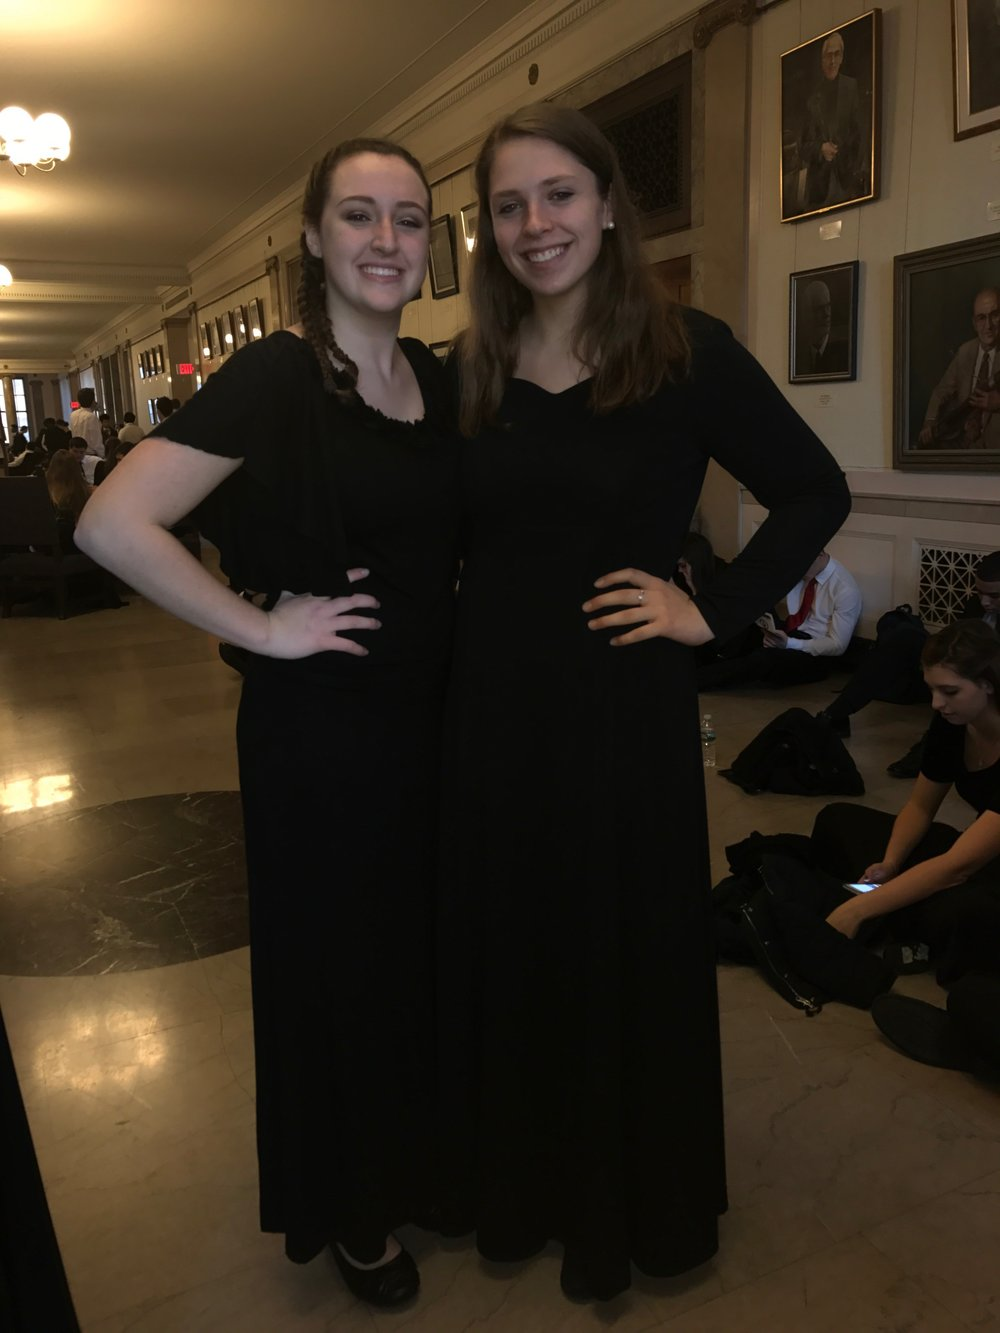 Marissa Digennaro (left) and Catherine Cargian at NYSSMA (right)